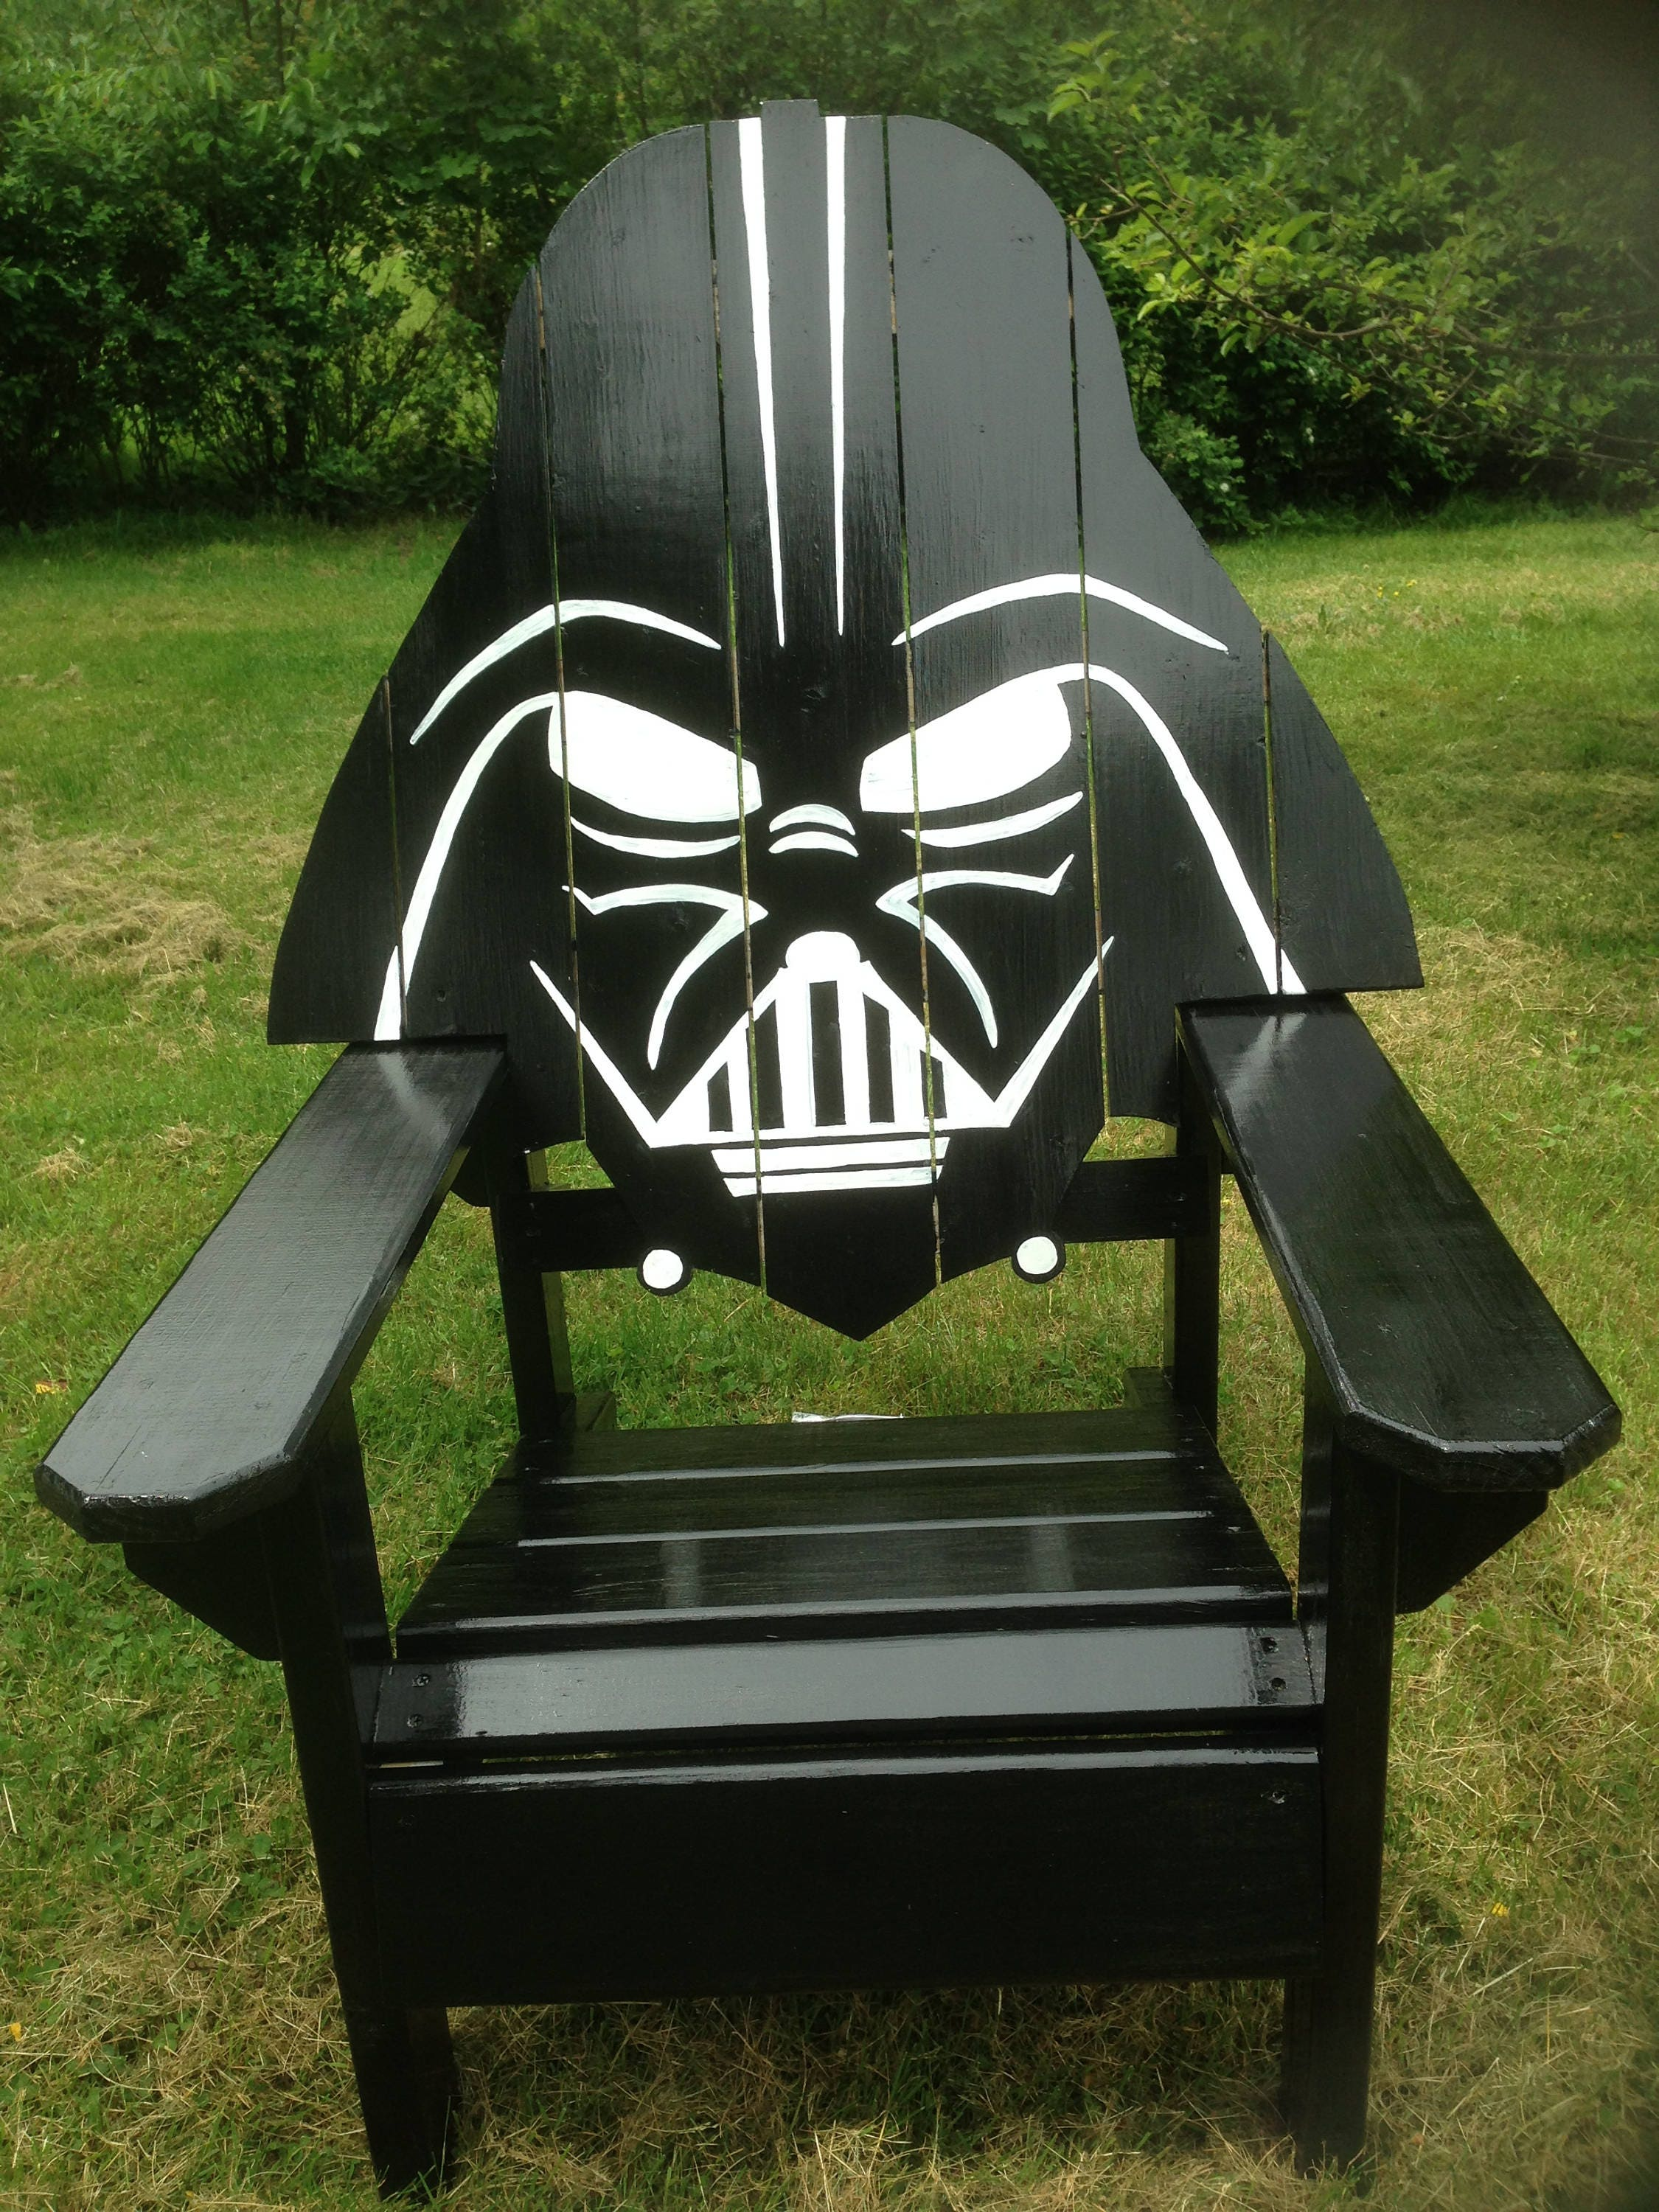 custom gaming chairs wheelchair wheels darth vader adirondack chair painted version star wars themed